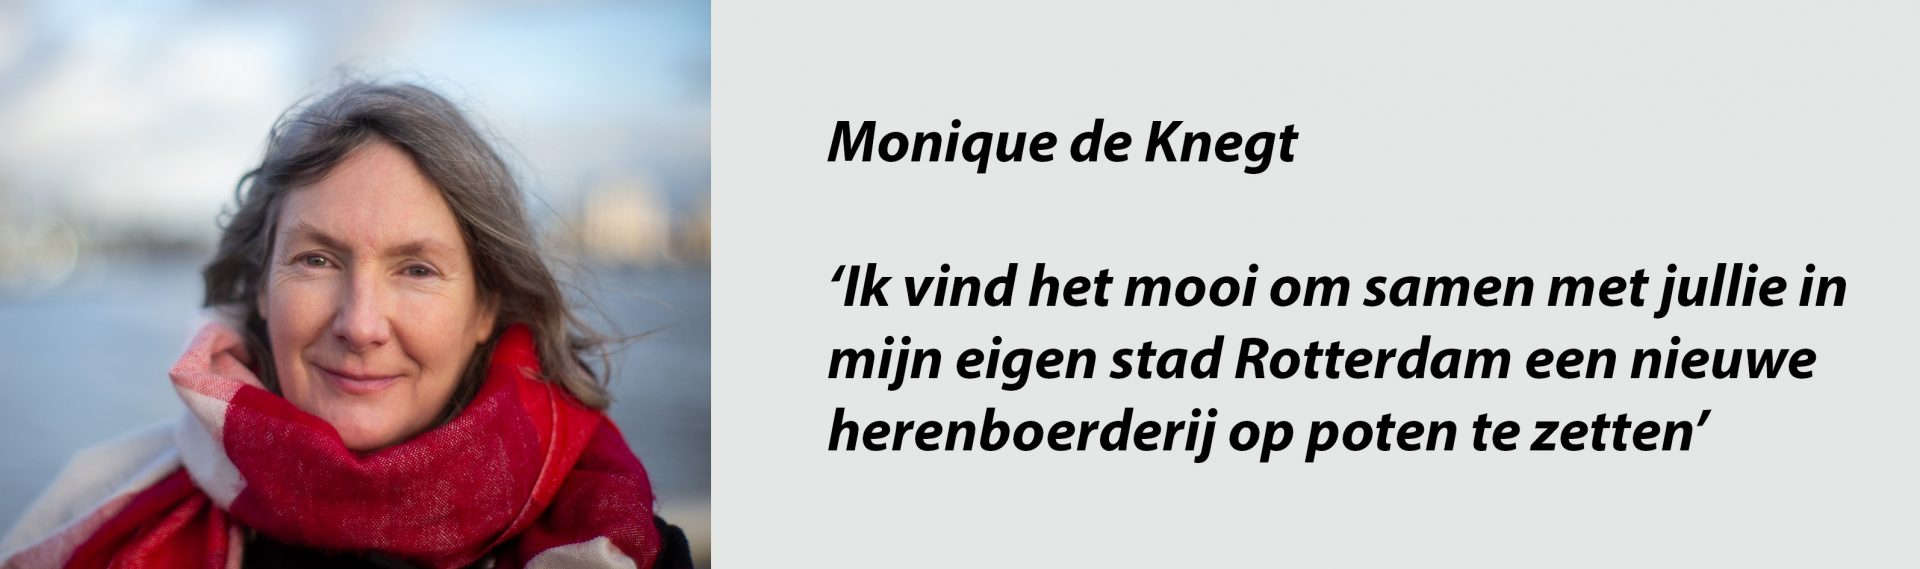 Monique de Knegt web